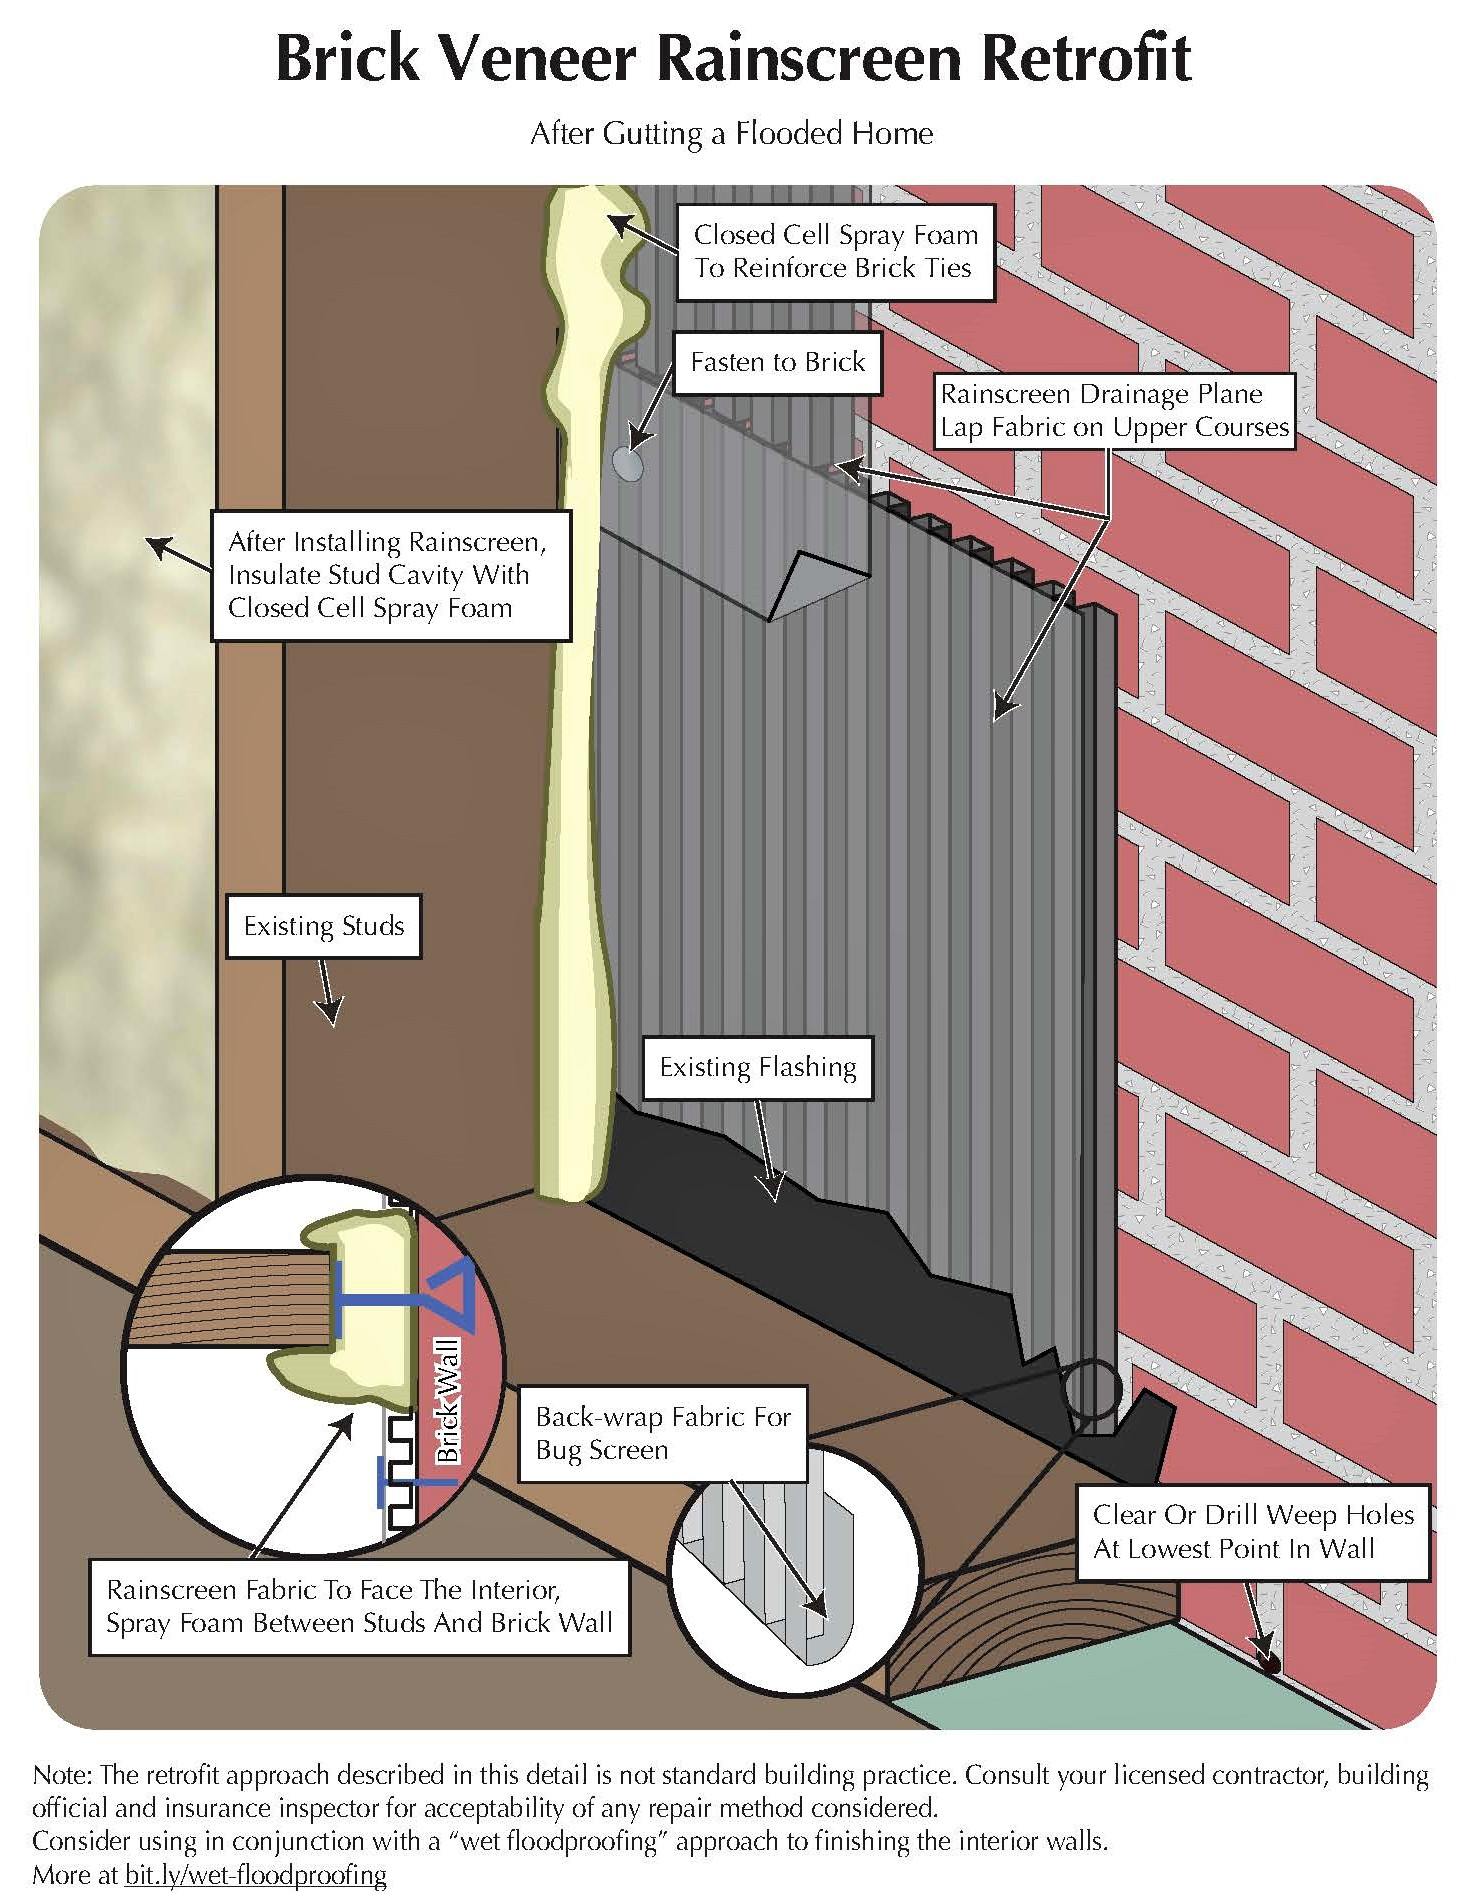 Faqs after gutting a flooded home closed cell spray foam with thin fanfold xps sheets method solutioingenieria Choice Image